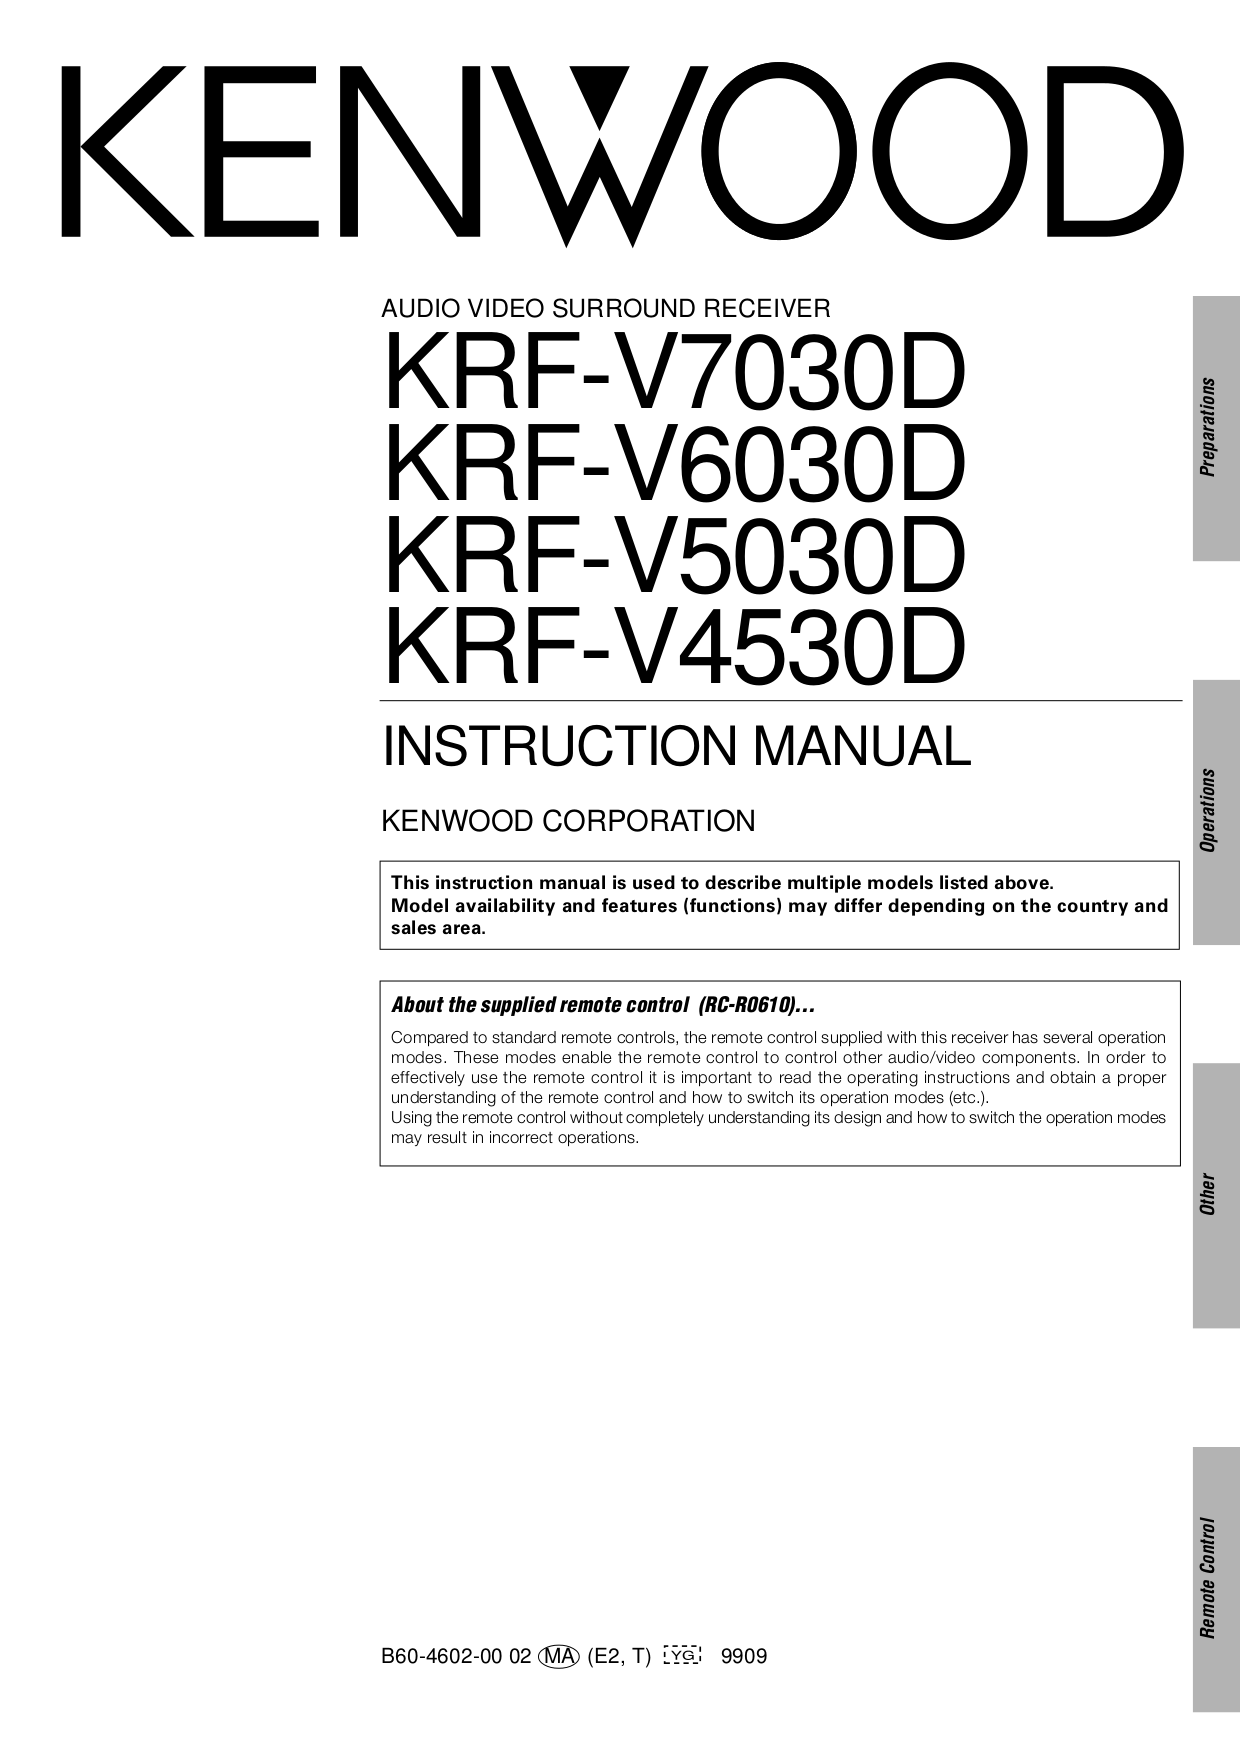 Kenwood Wiring Diagram Pdf additionally Wiring Diagram For 2004 Buick Regal as well 49v3w Kia Sedona Tail Lights Not Working besides 2001 Kia Rio Spark Plug Wire Diagram also 2007 Kia Sedona Wiring Diagram. on kia carnival radio wiring diagram diagrams